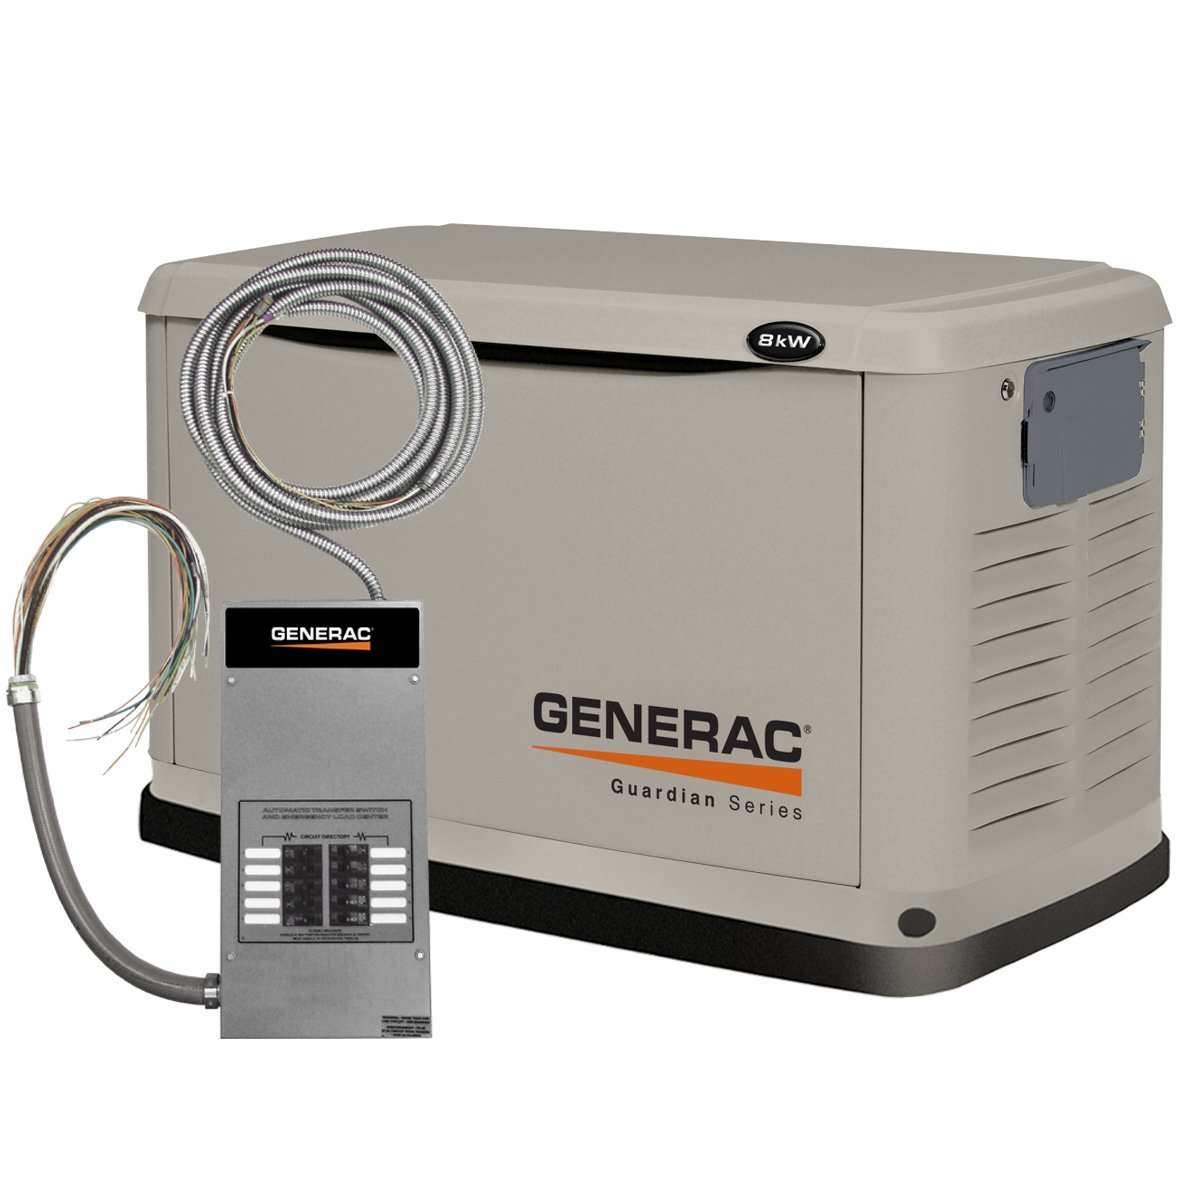 10 Best Standby Generators 9 10 best standby generators to get today 4000 Watt Generac Generator Wiring at gsmportal.co